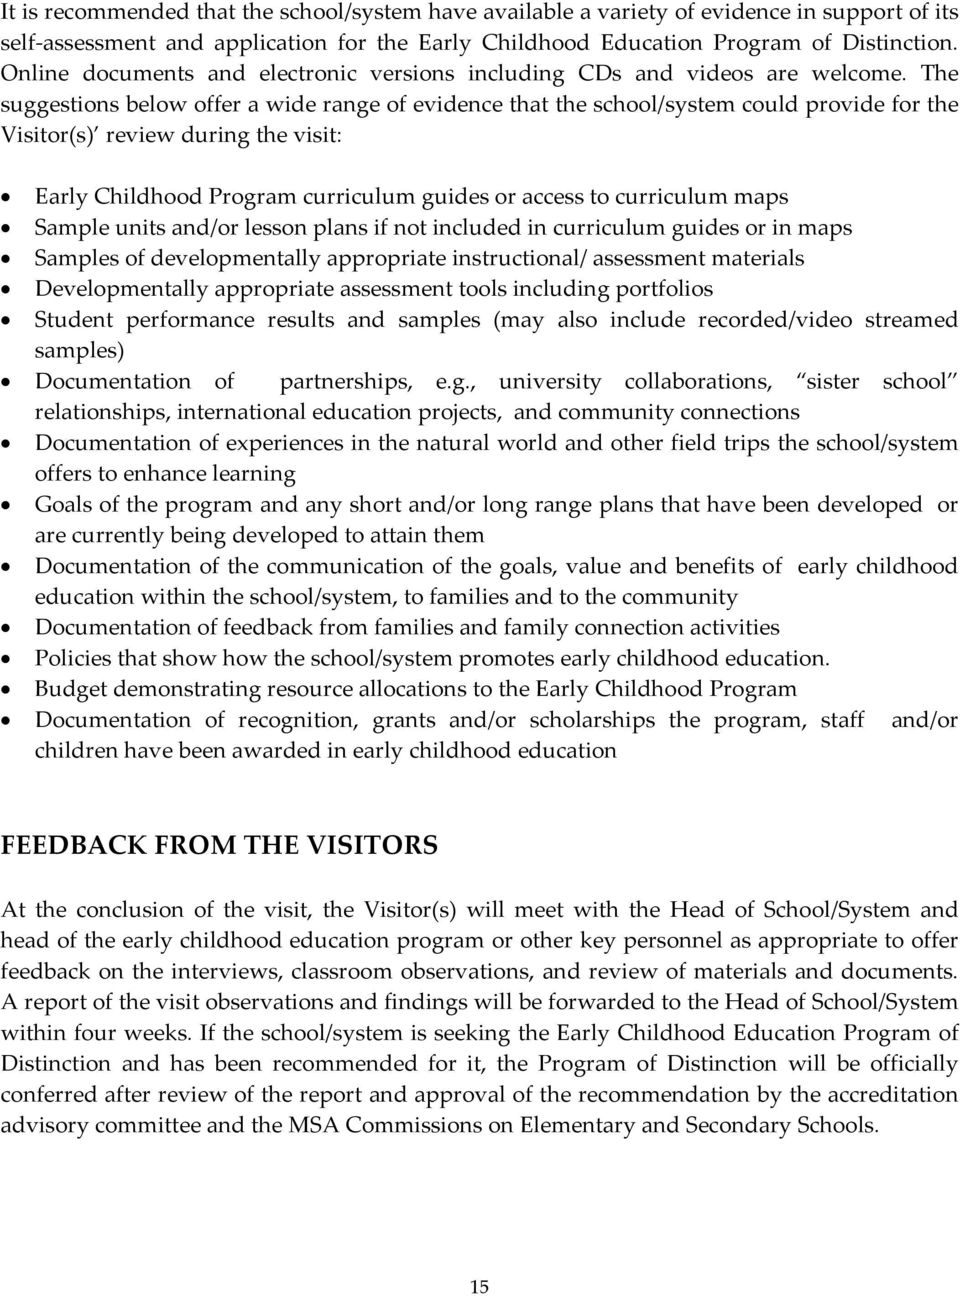 The suggestions below offer a wide range of evidence that the school/system could provide for the Visitor(s) review during the visit: Early Childhood Program curriculum guides or access to curriculum